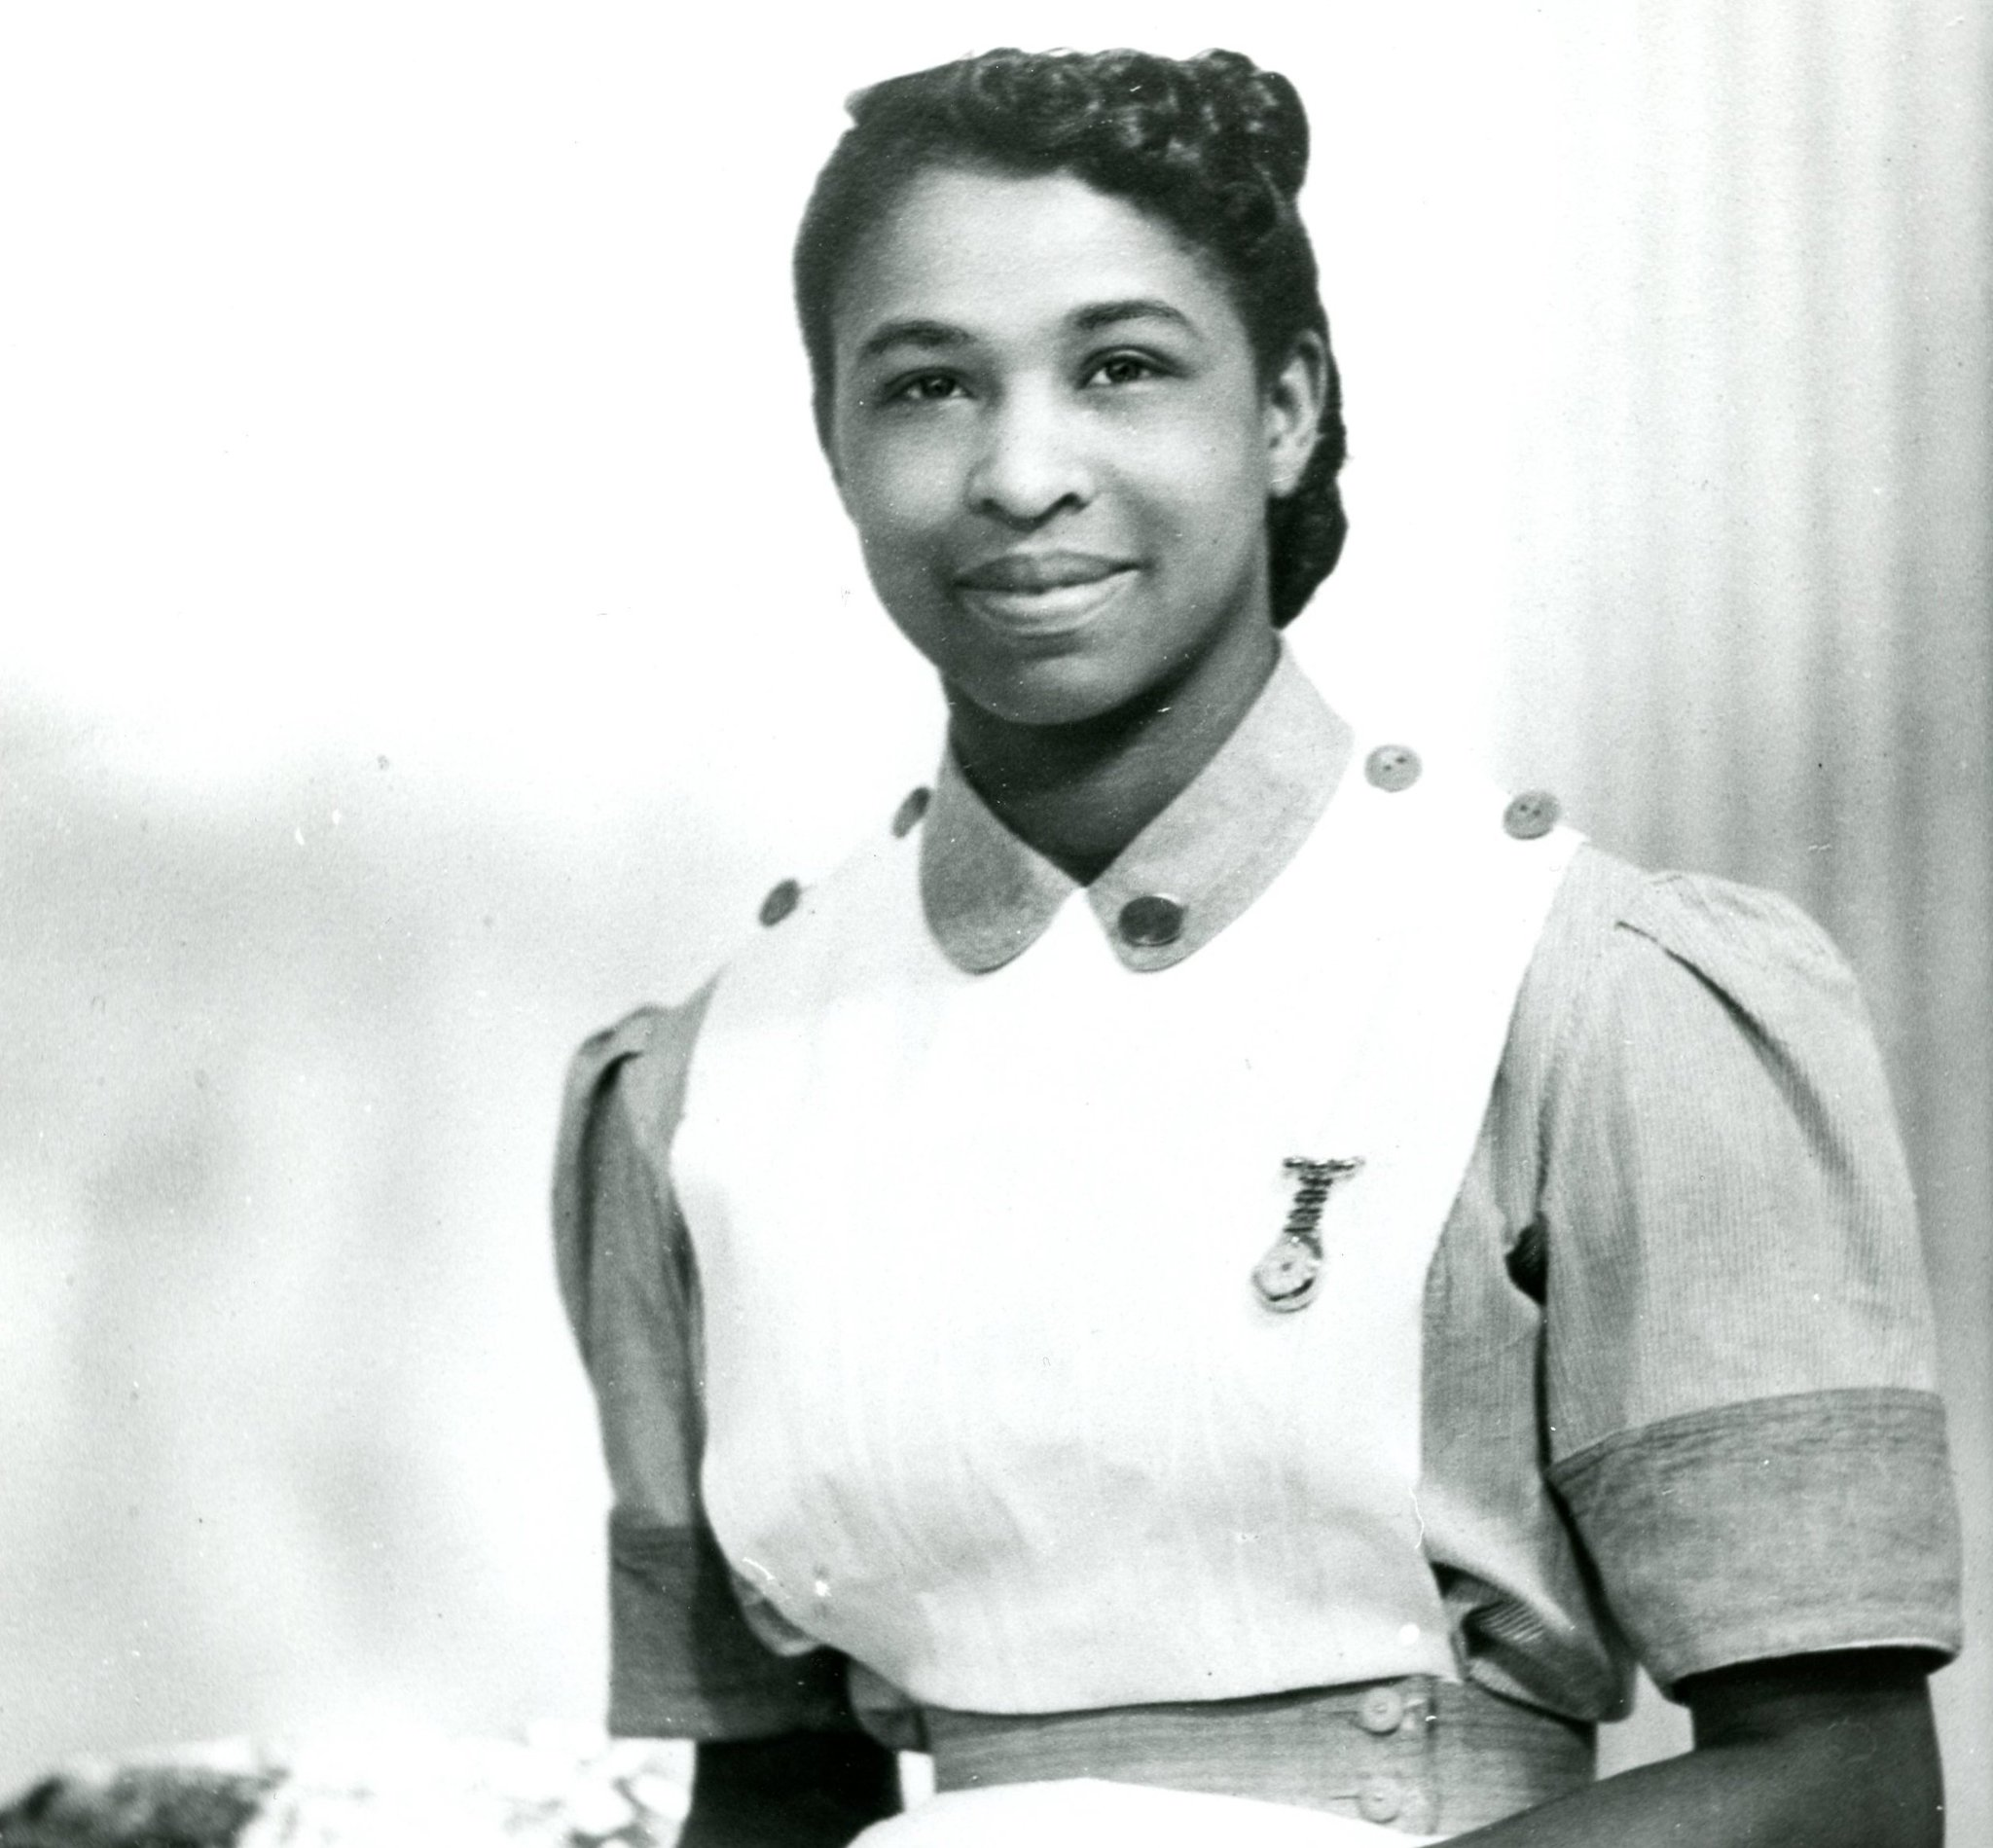 Louise Da-Cocodia and the discrimination faced by black nurses in the infant days of the NHS – The 70th anniversary of the Empire Windrush and the NHS.